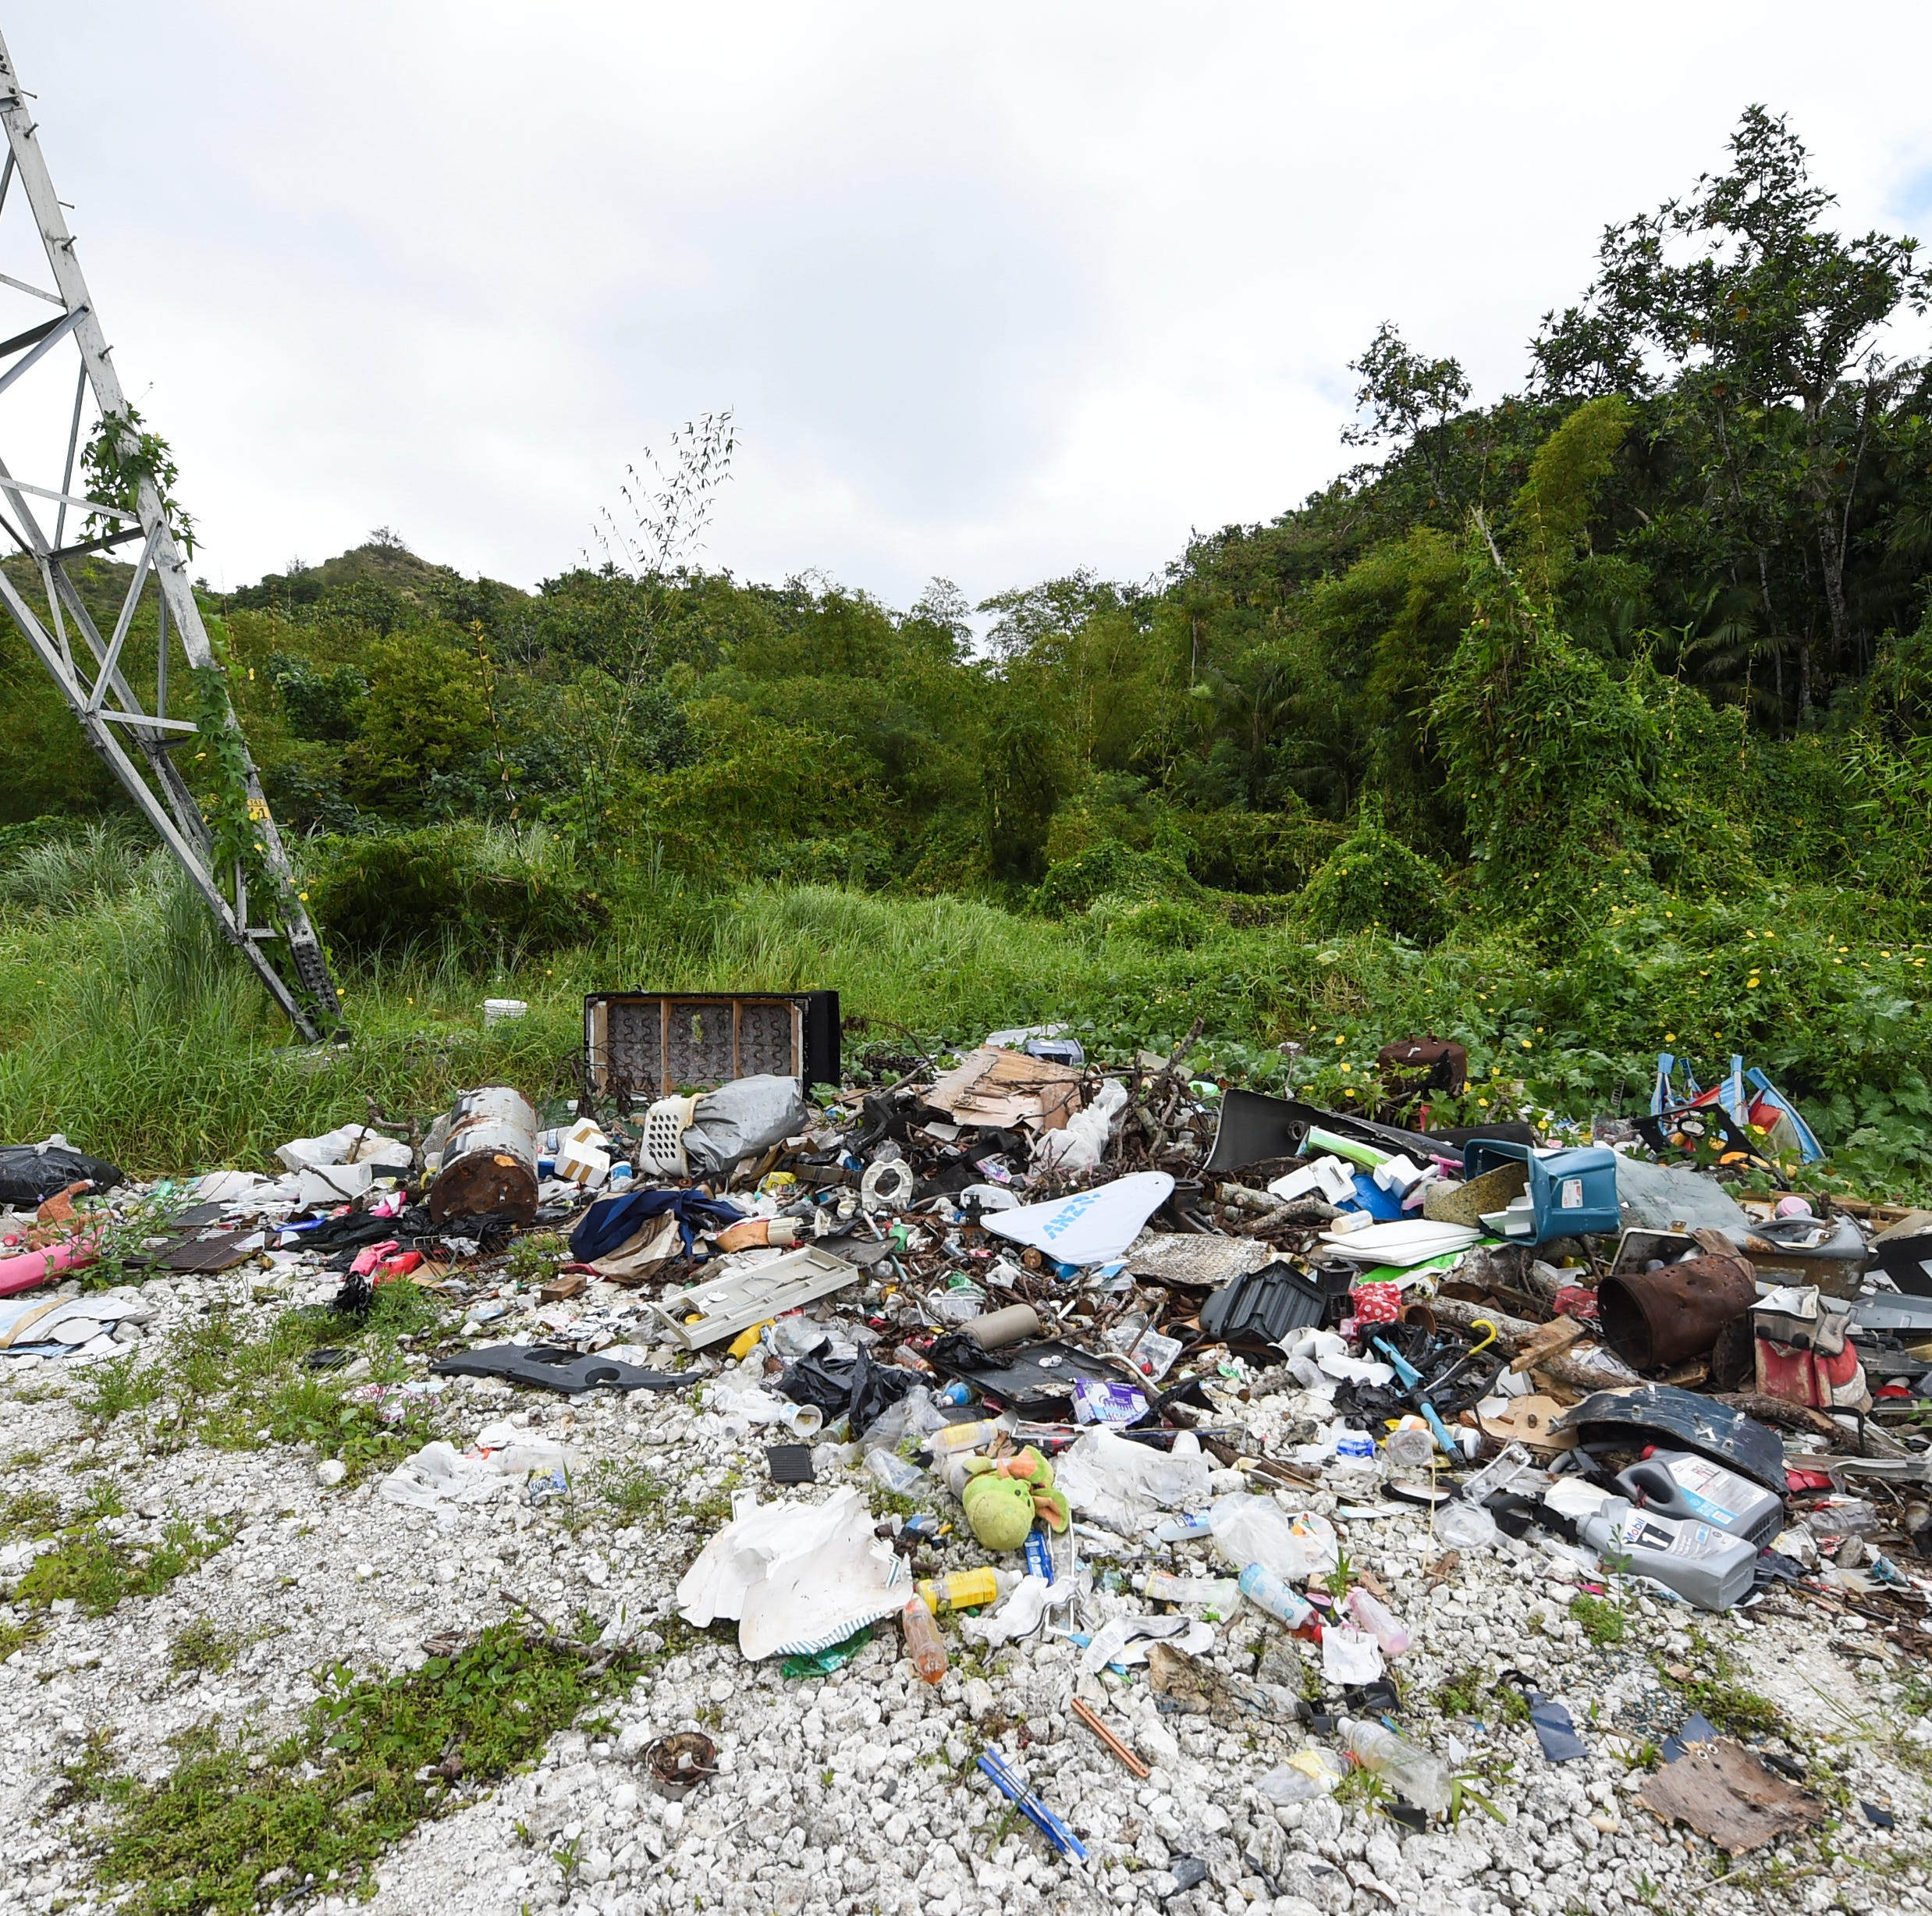 Voice of the People: Concerns over littering in Guam, malfunctioning street lights